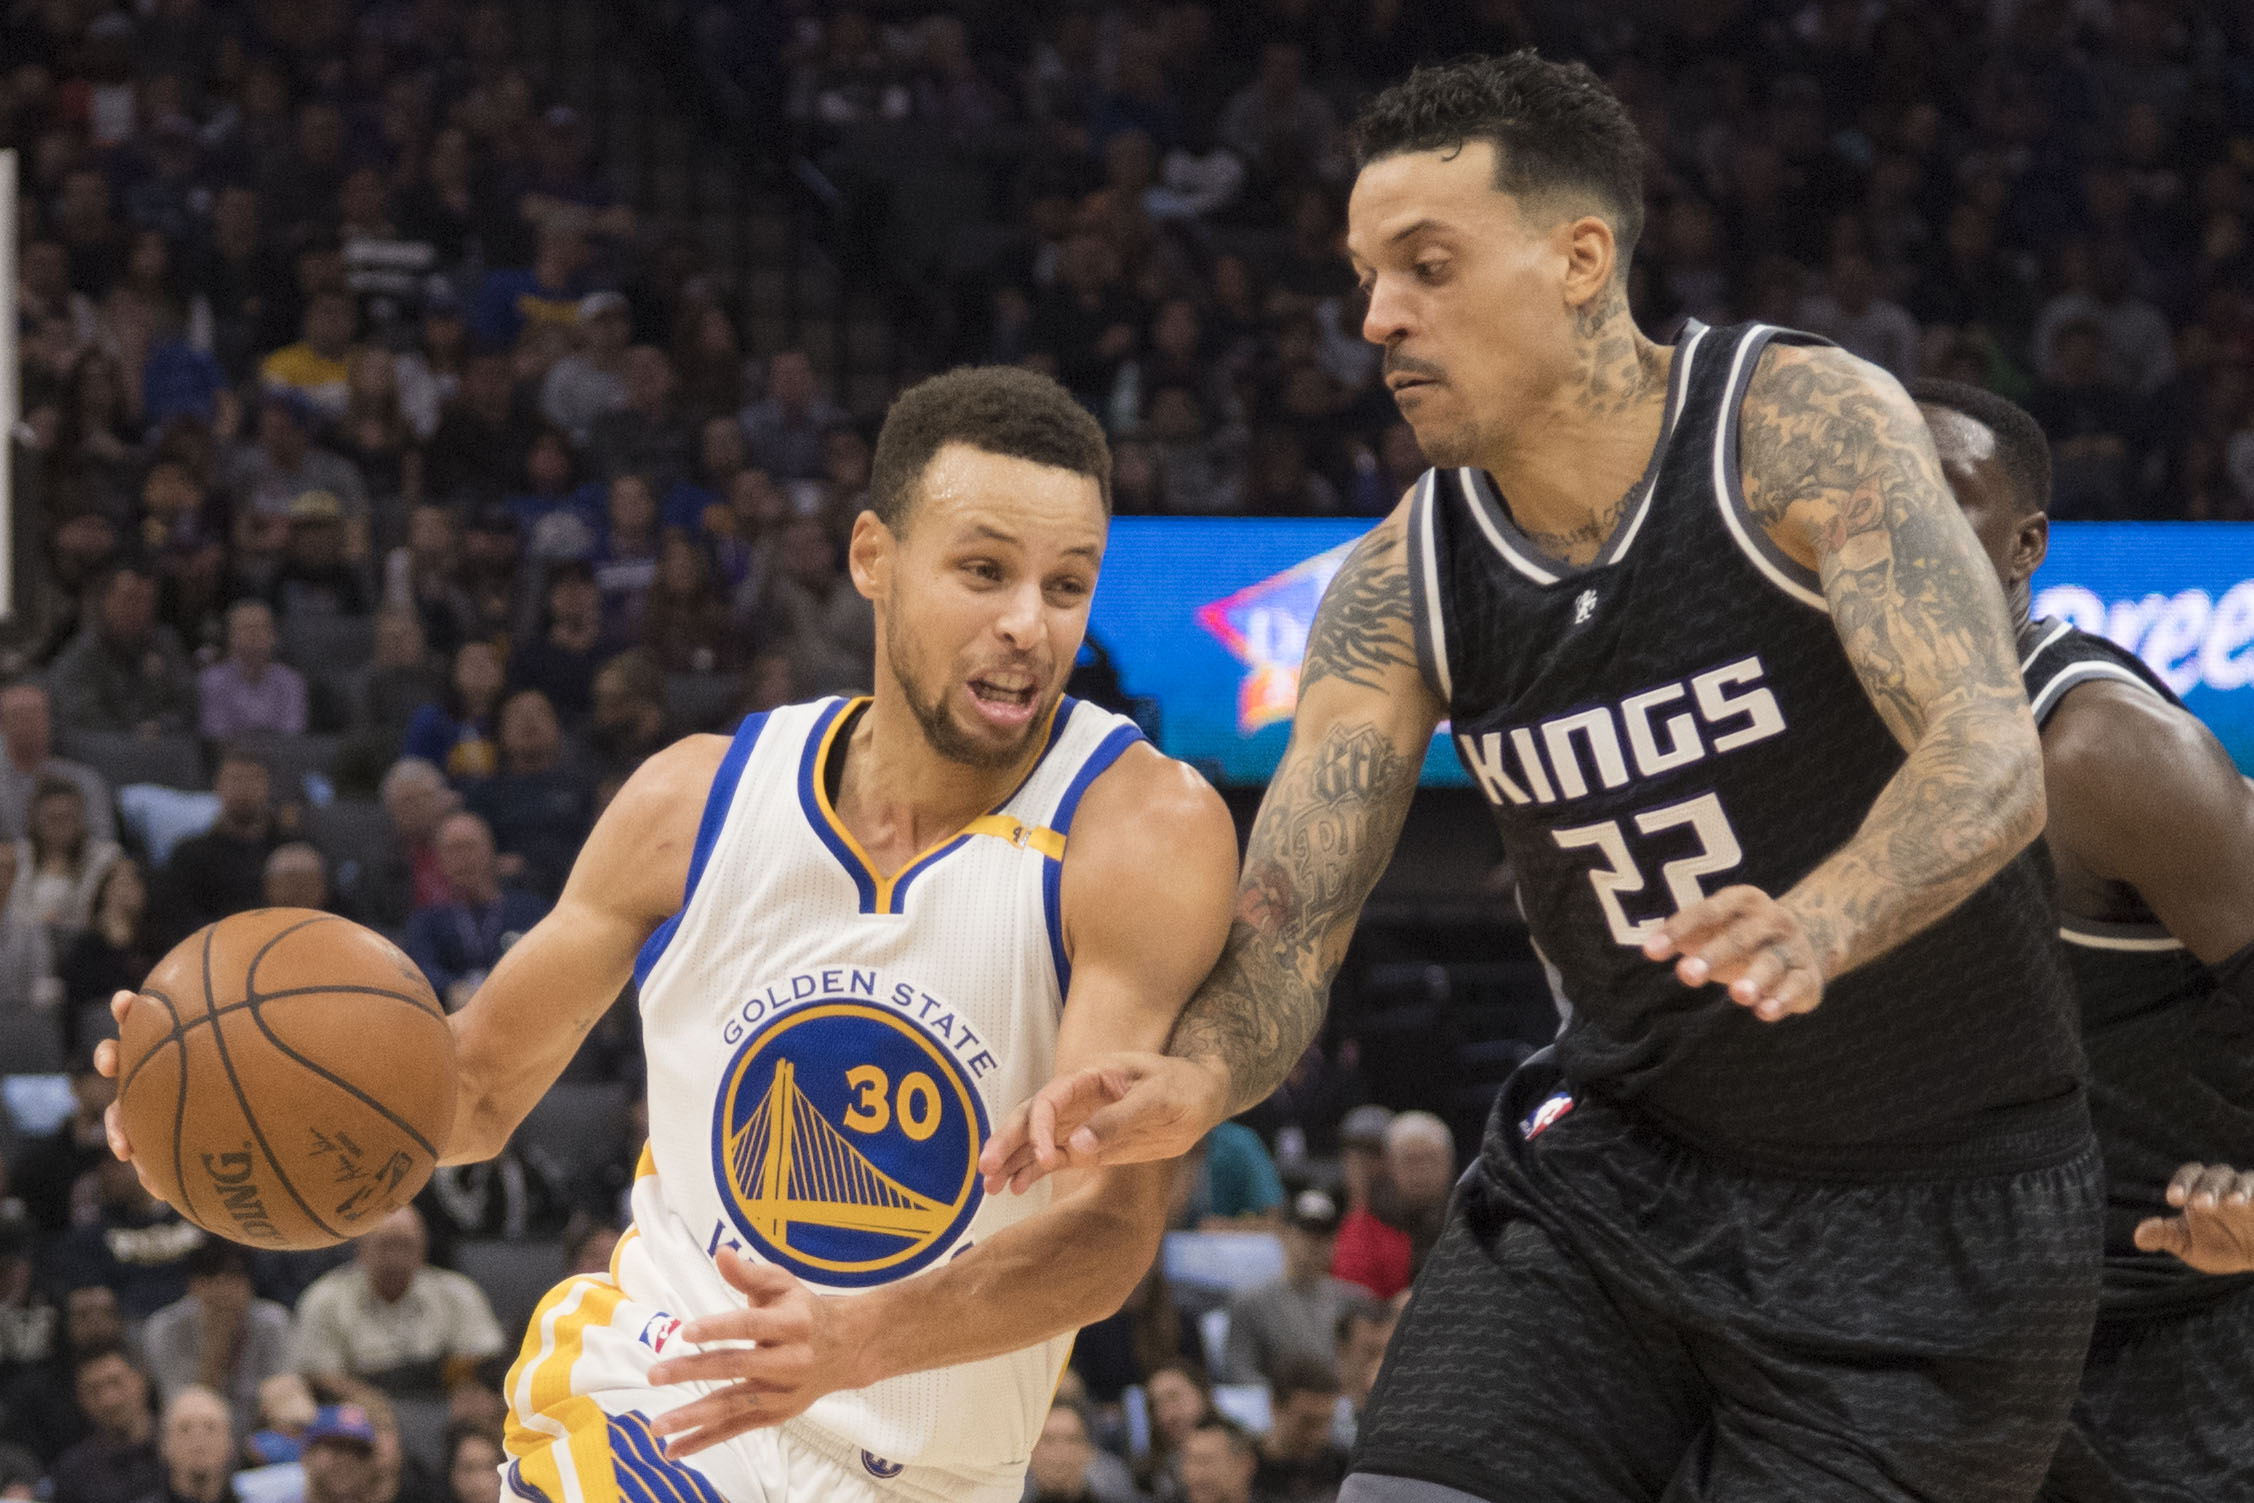 9799432-nba-golden-state-warriors-at-sacramento-kings